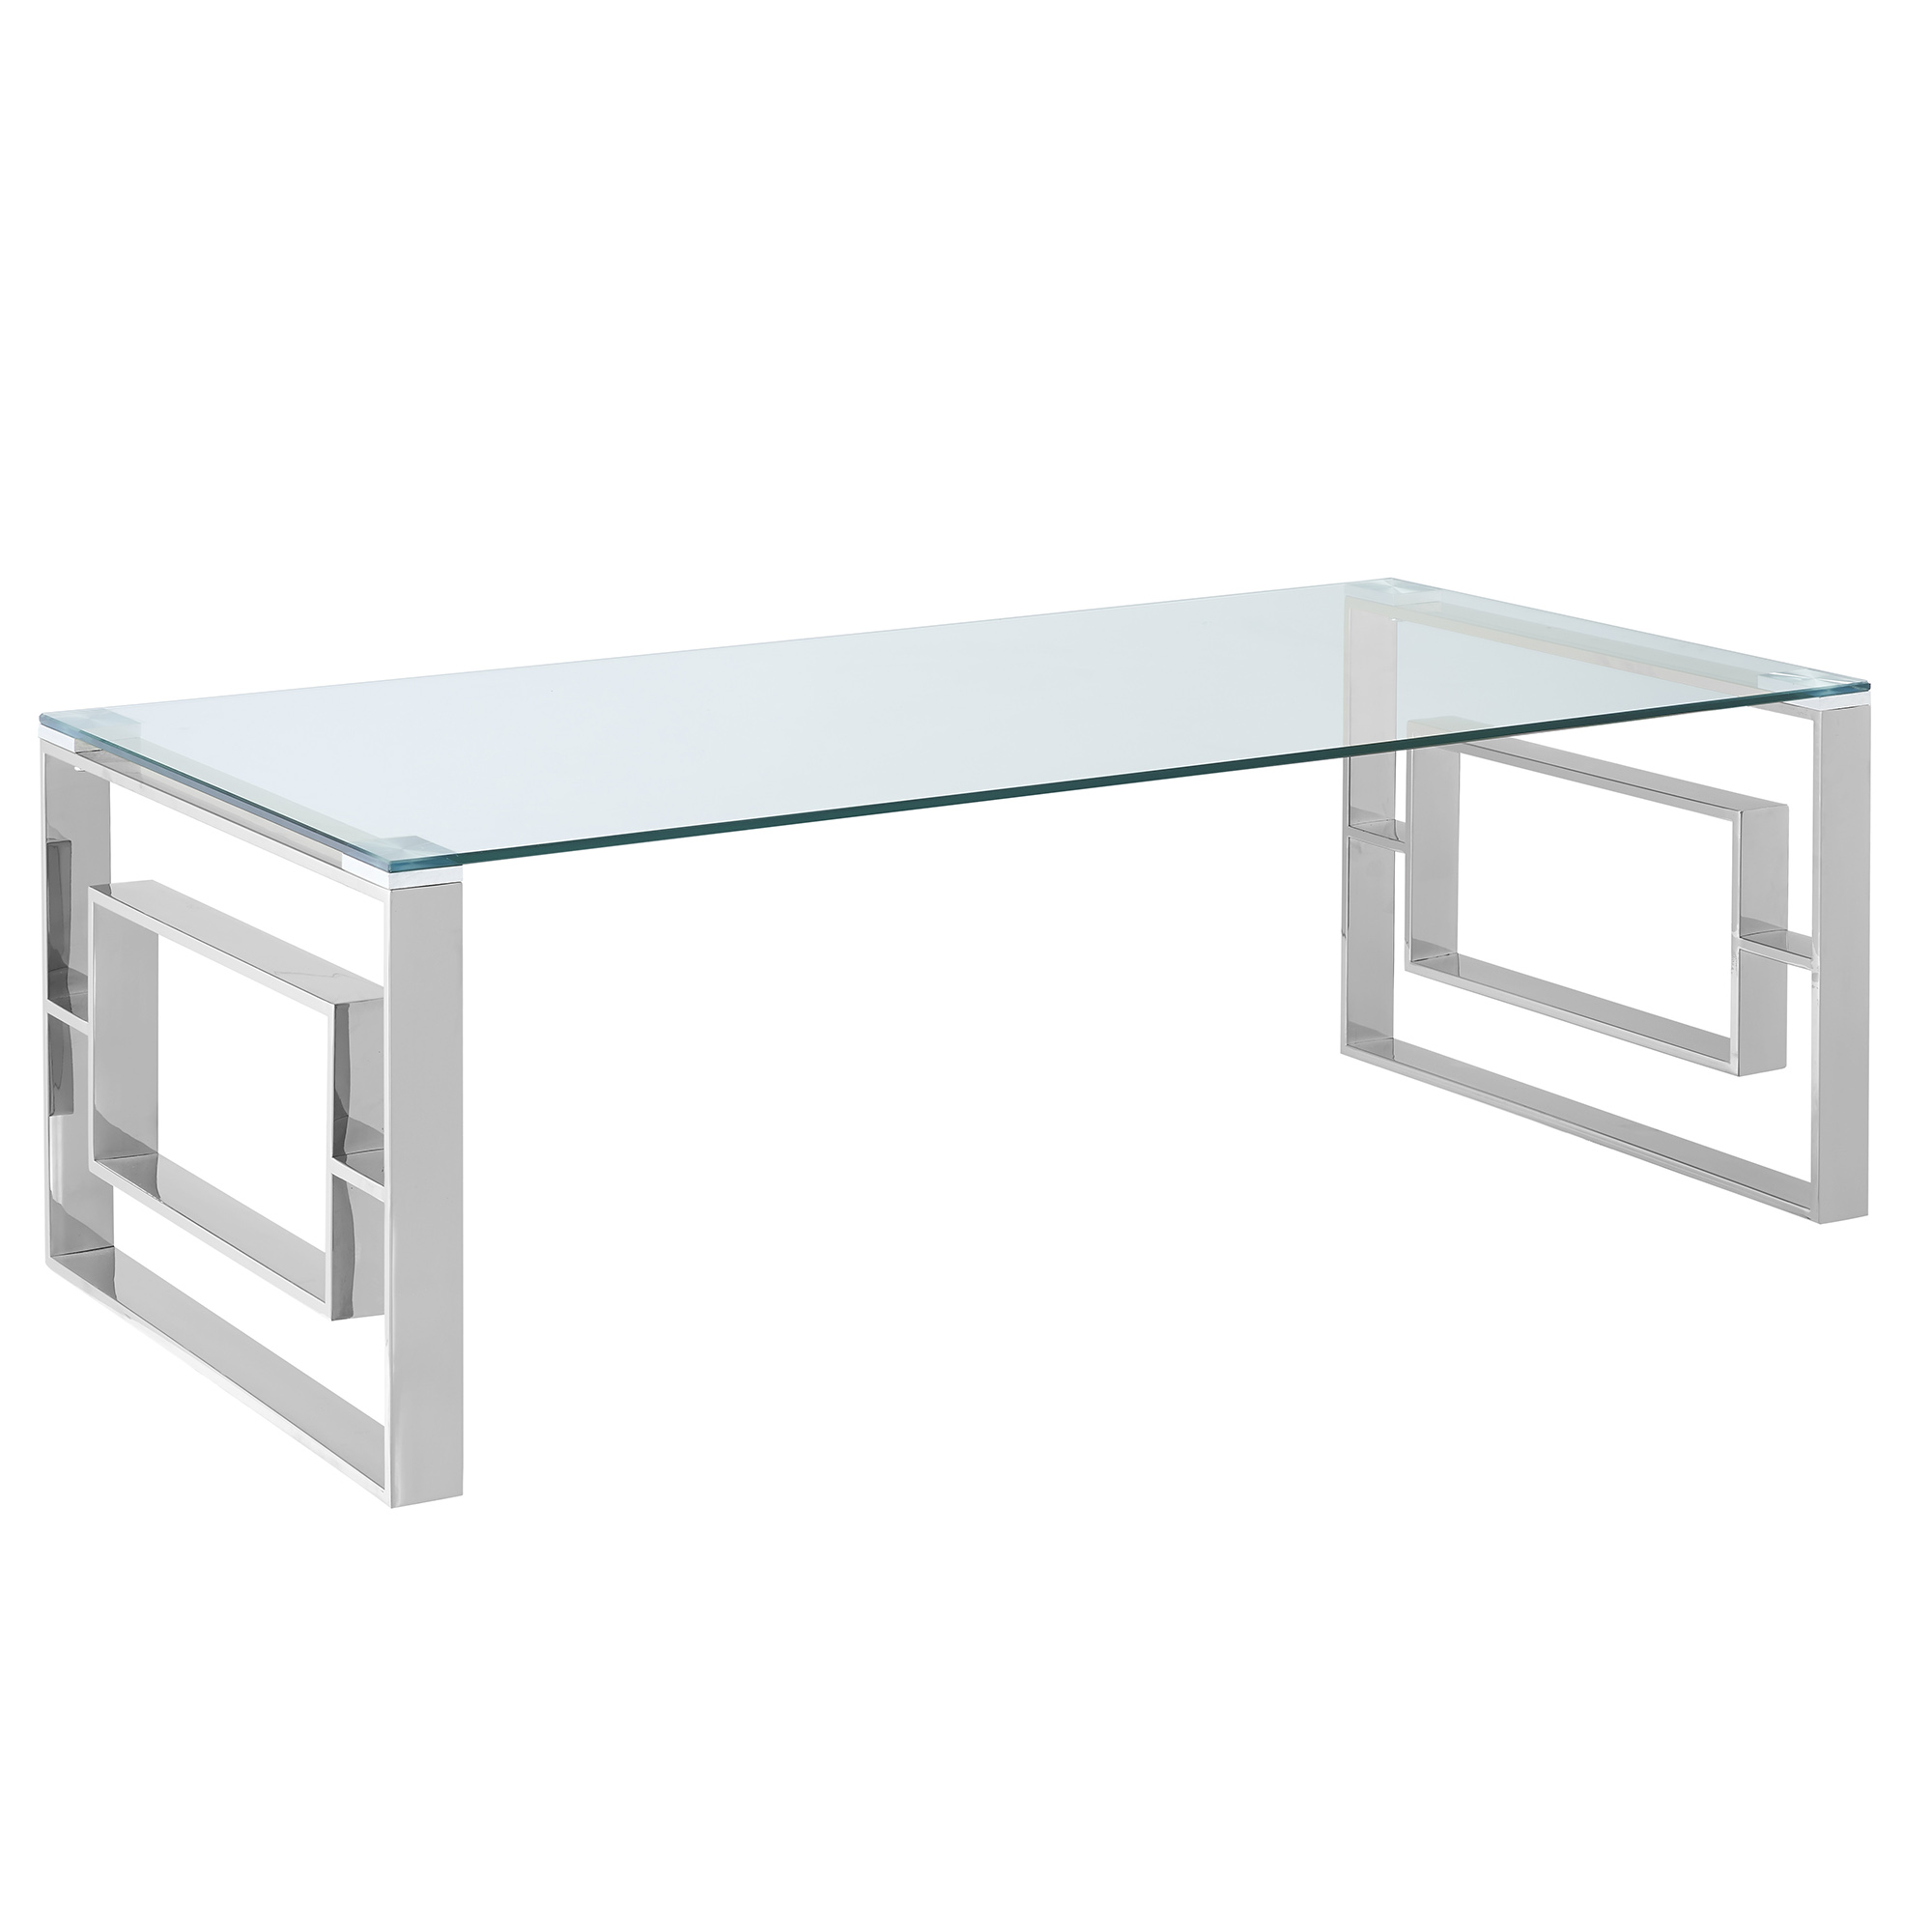 Contemporary Stainless Steel & Glass Coffee Table in Silver